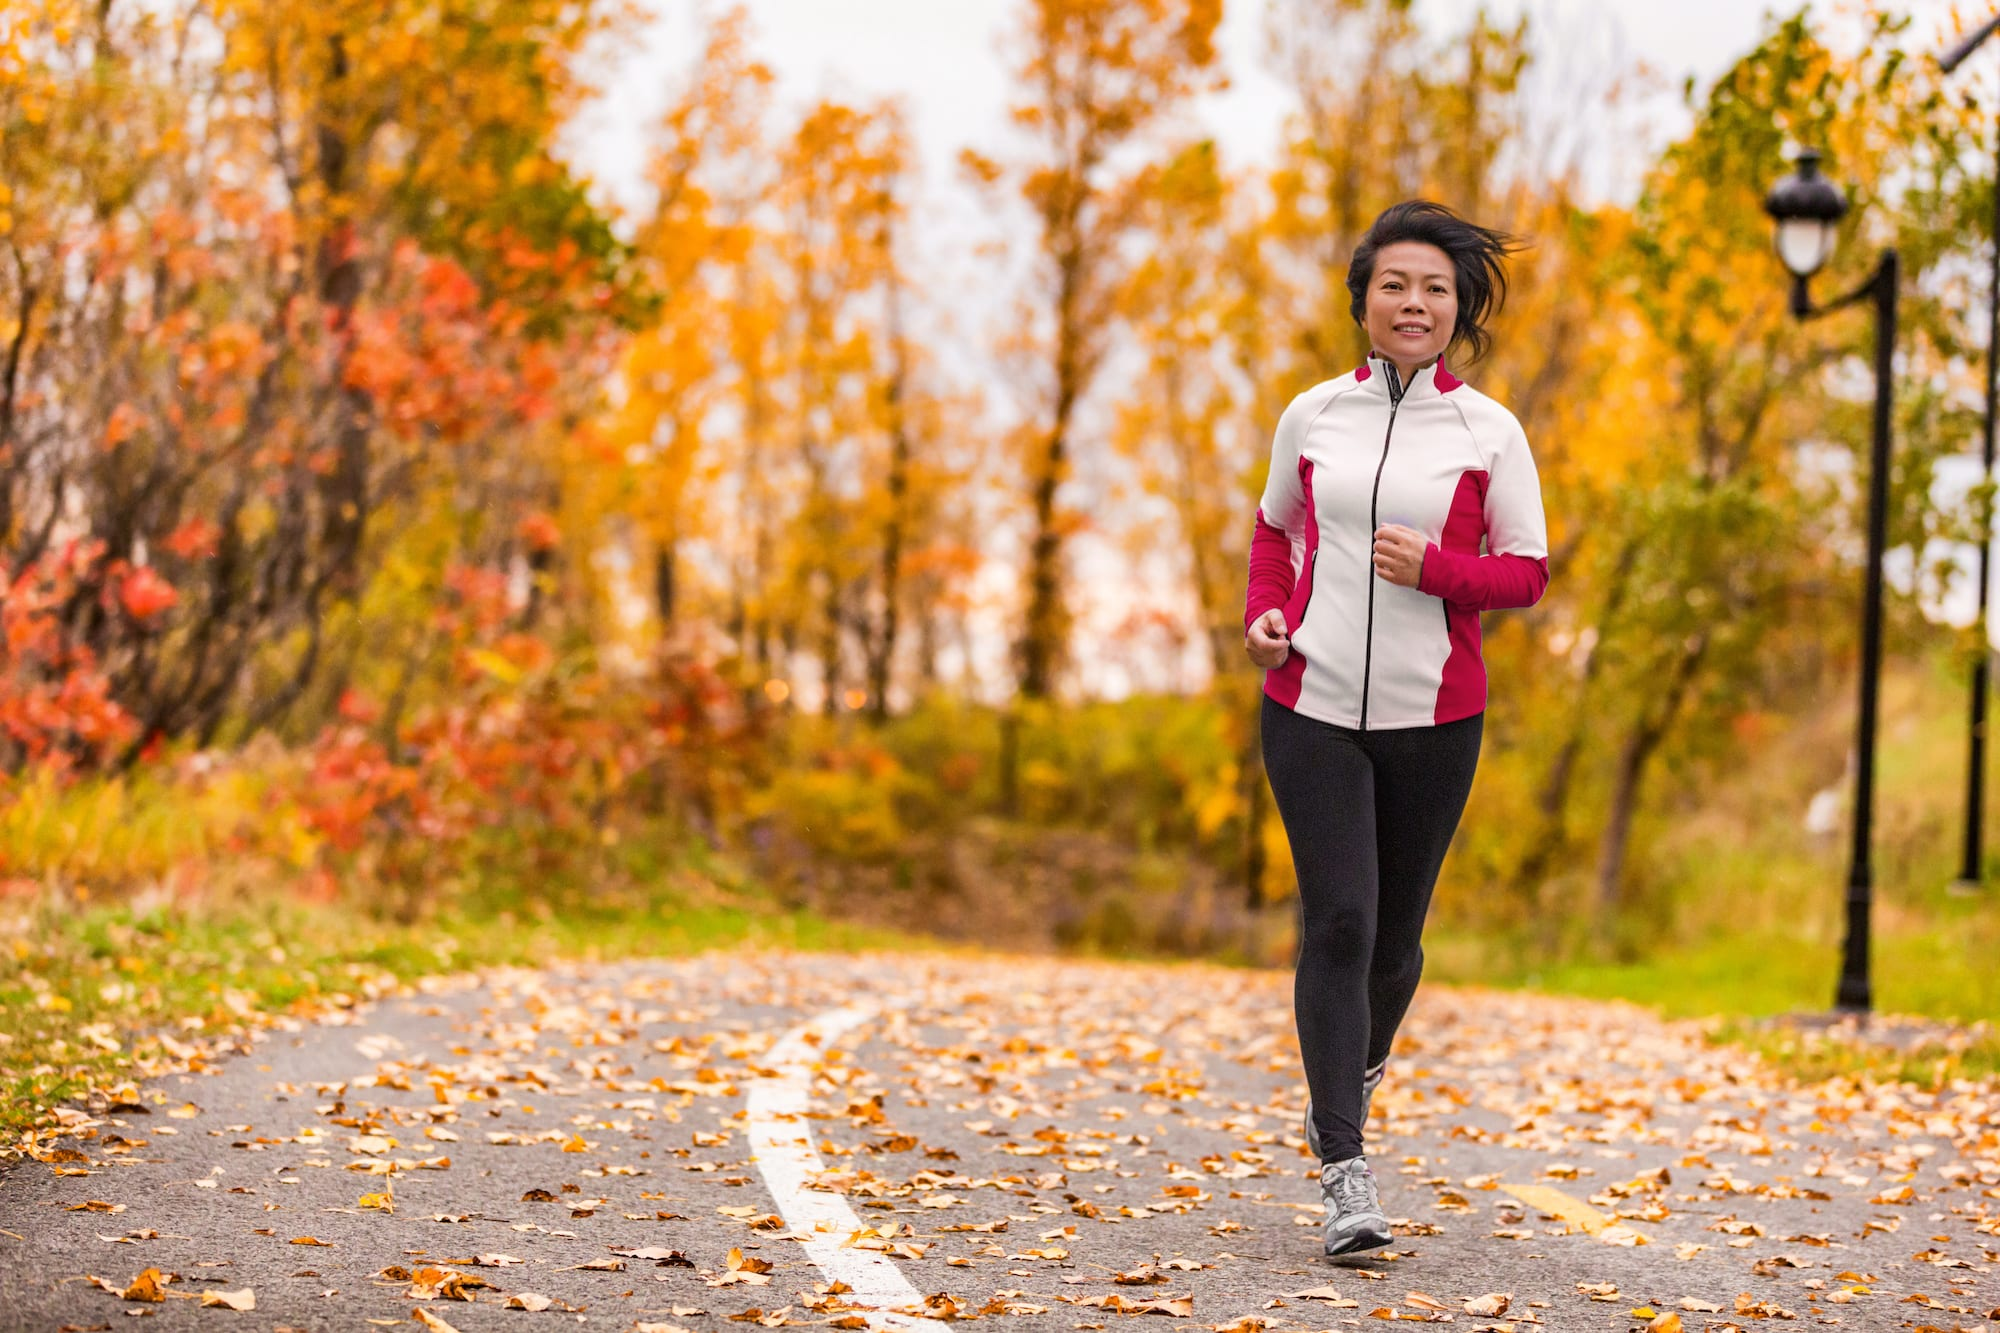 Mature Asian woman running active in her 50s. Middle aged female jogging outdoor living healthy lifestyle in beautiful autumn city park in colorful fall foliage. Asian Chinese adult in her fifties.   SLENT Hearing